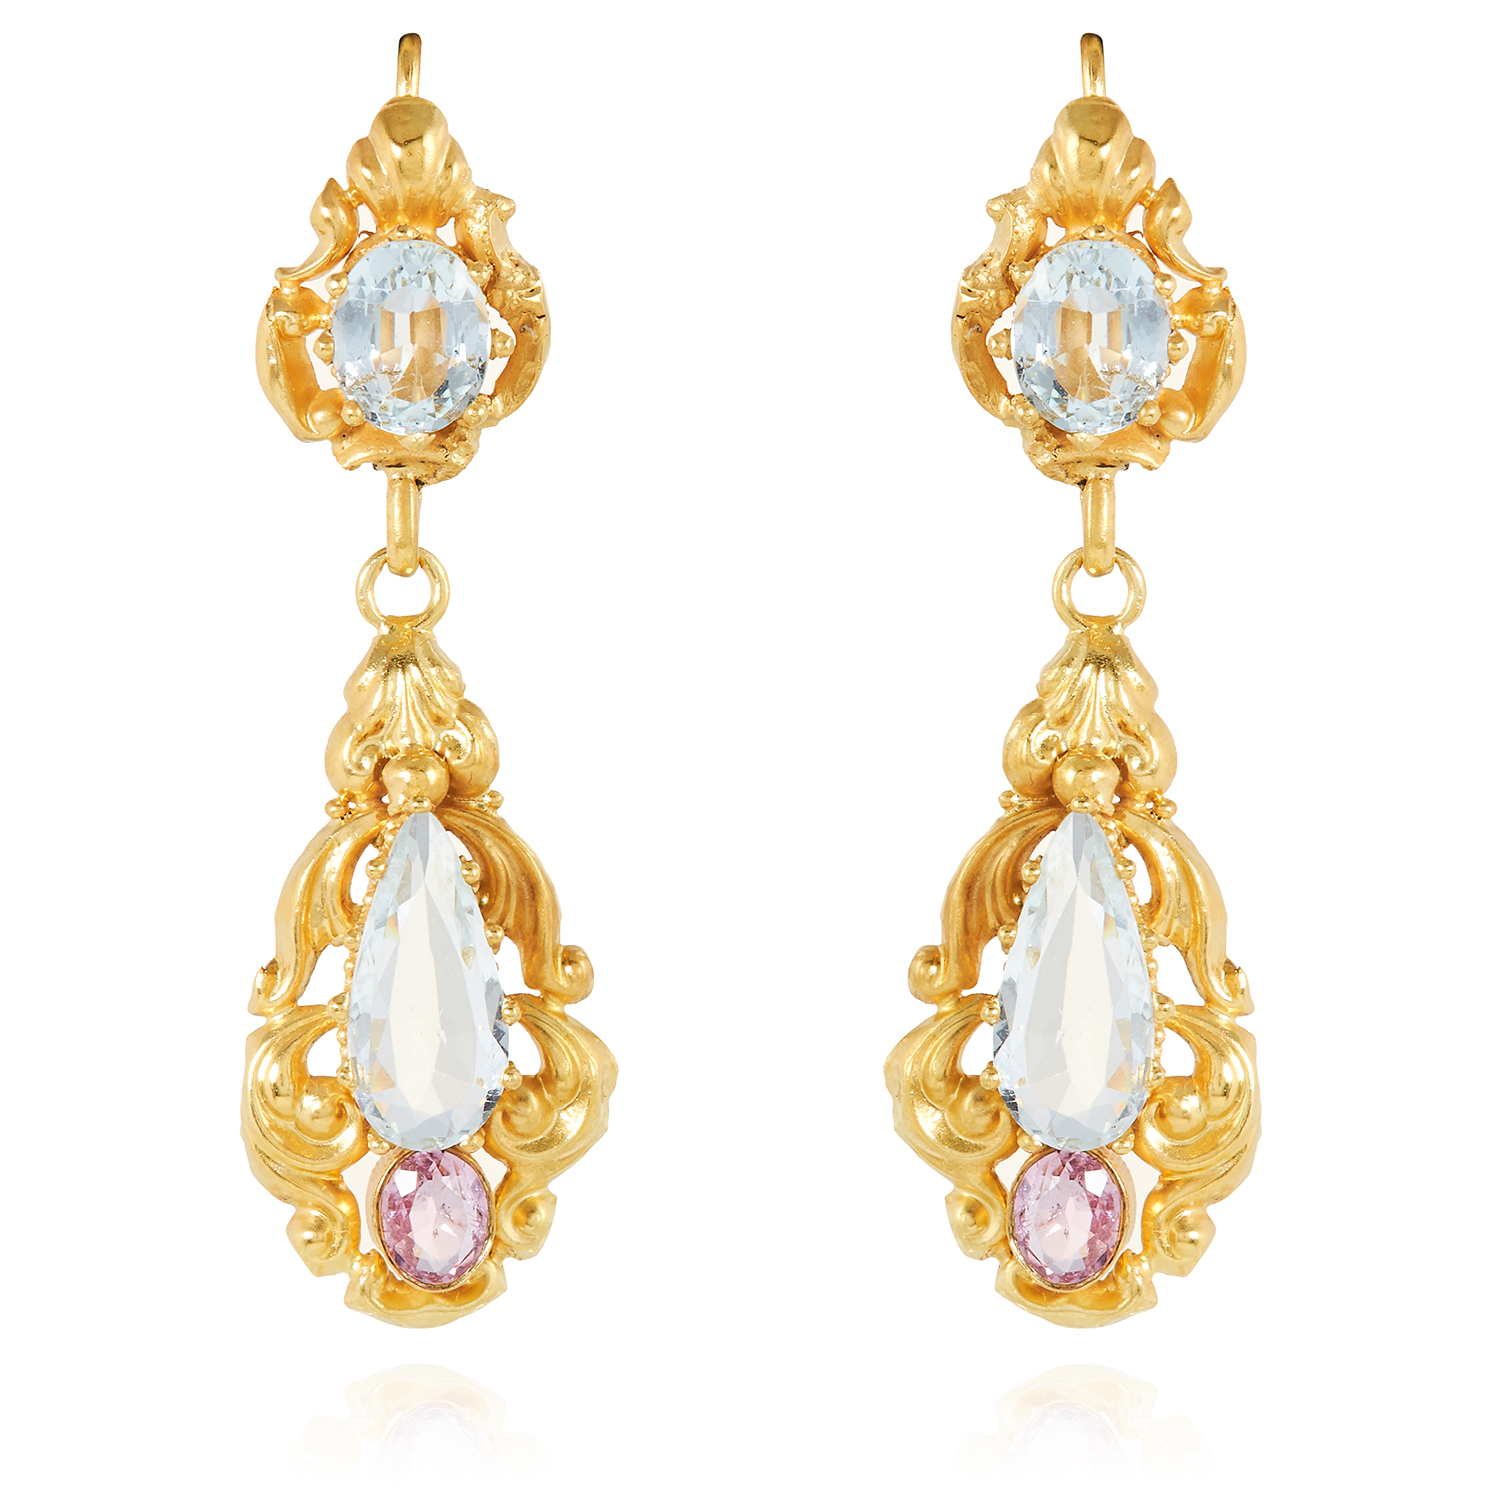 Los 7 - A PAIR OF ANTIQUE AQUAMARINE AND TOPAZ EARRINGS in high carat yellow gold, each set with an oval and